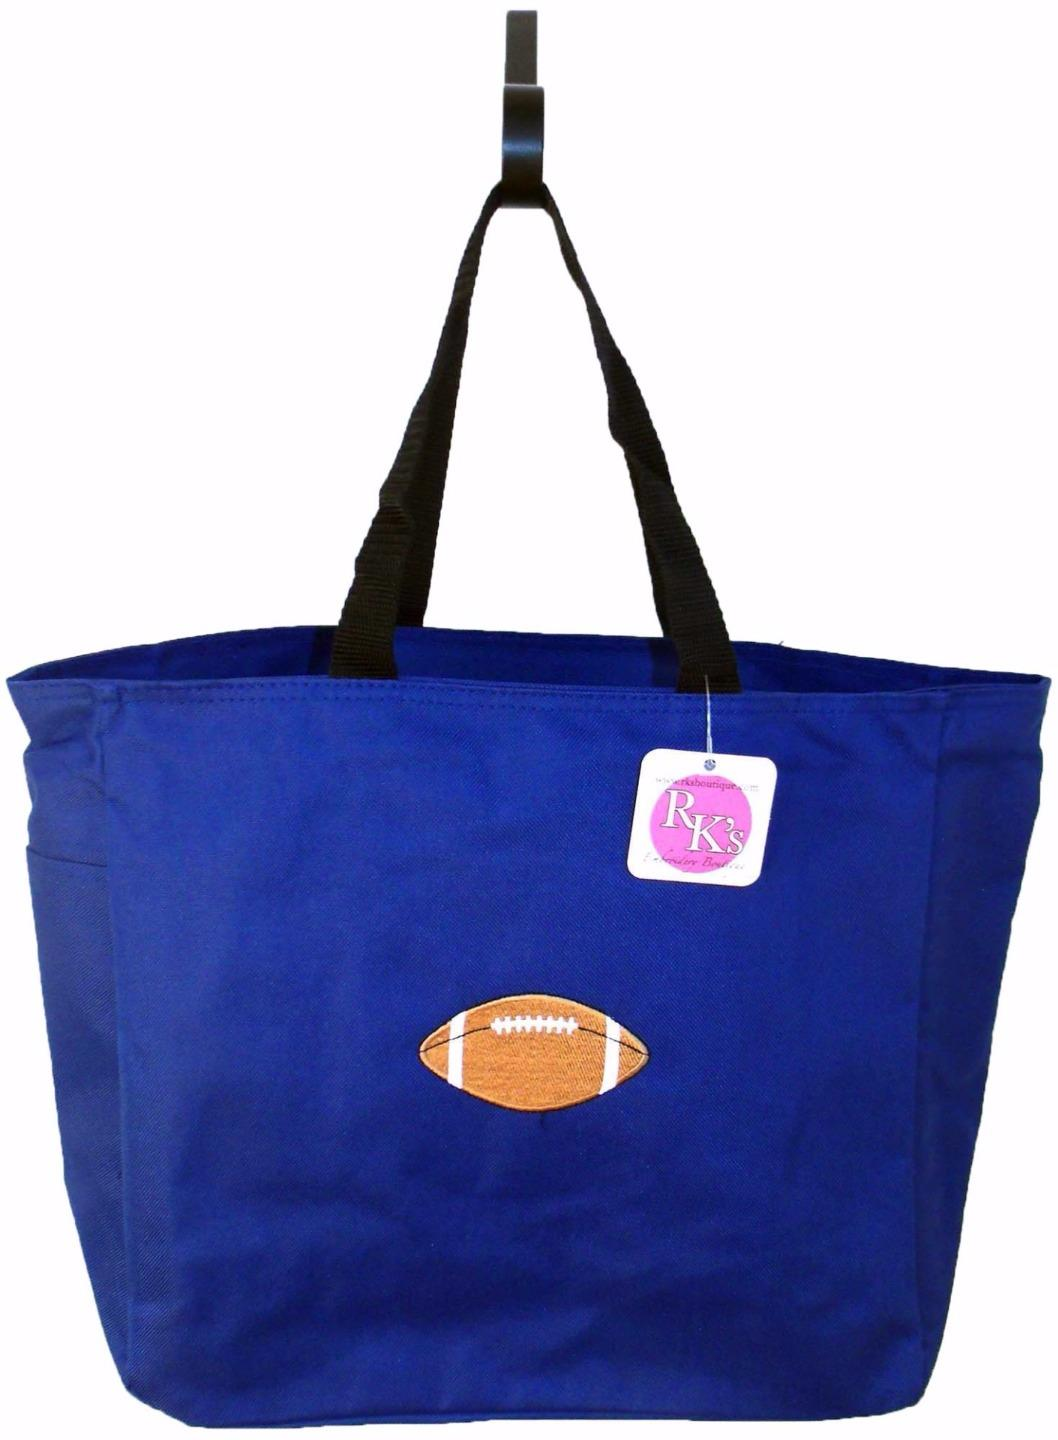 football team mom free name custom embroidered essential tote bag nwt ebay. Black Bedroom Furniture Sets. Home Design Ideas